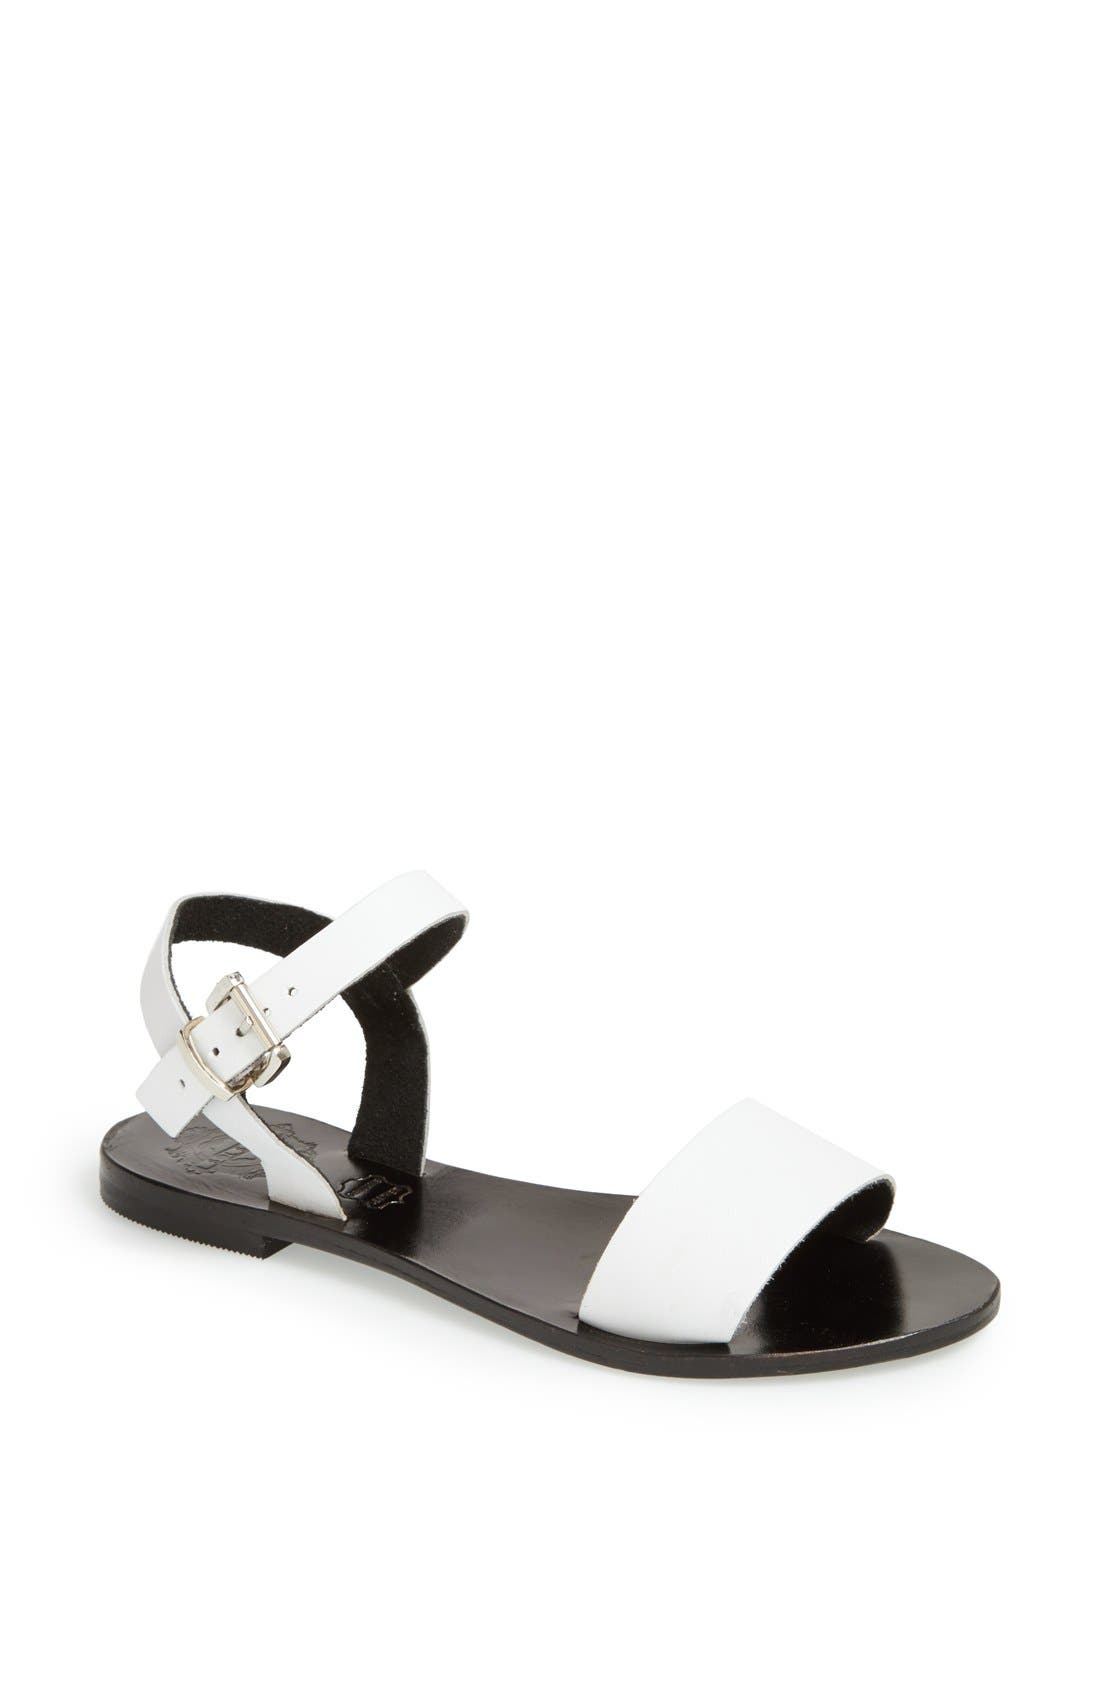 Main Image - Sol Sana 'Ara' Leather Sandal